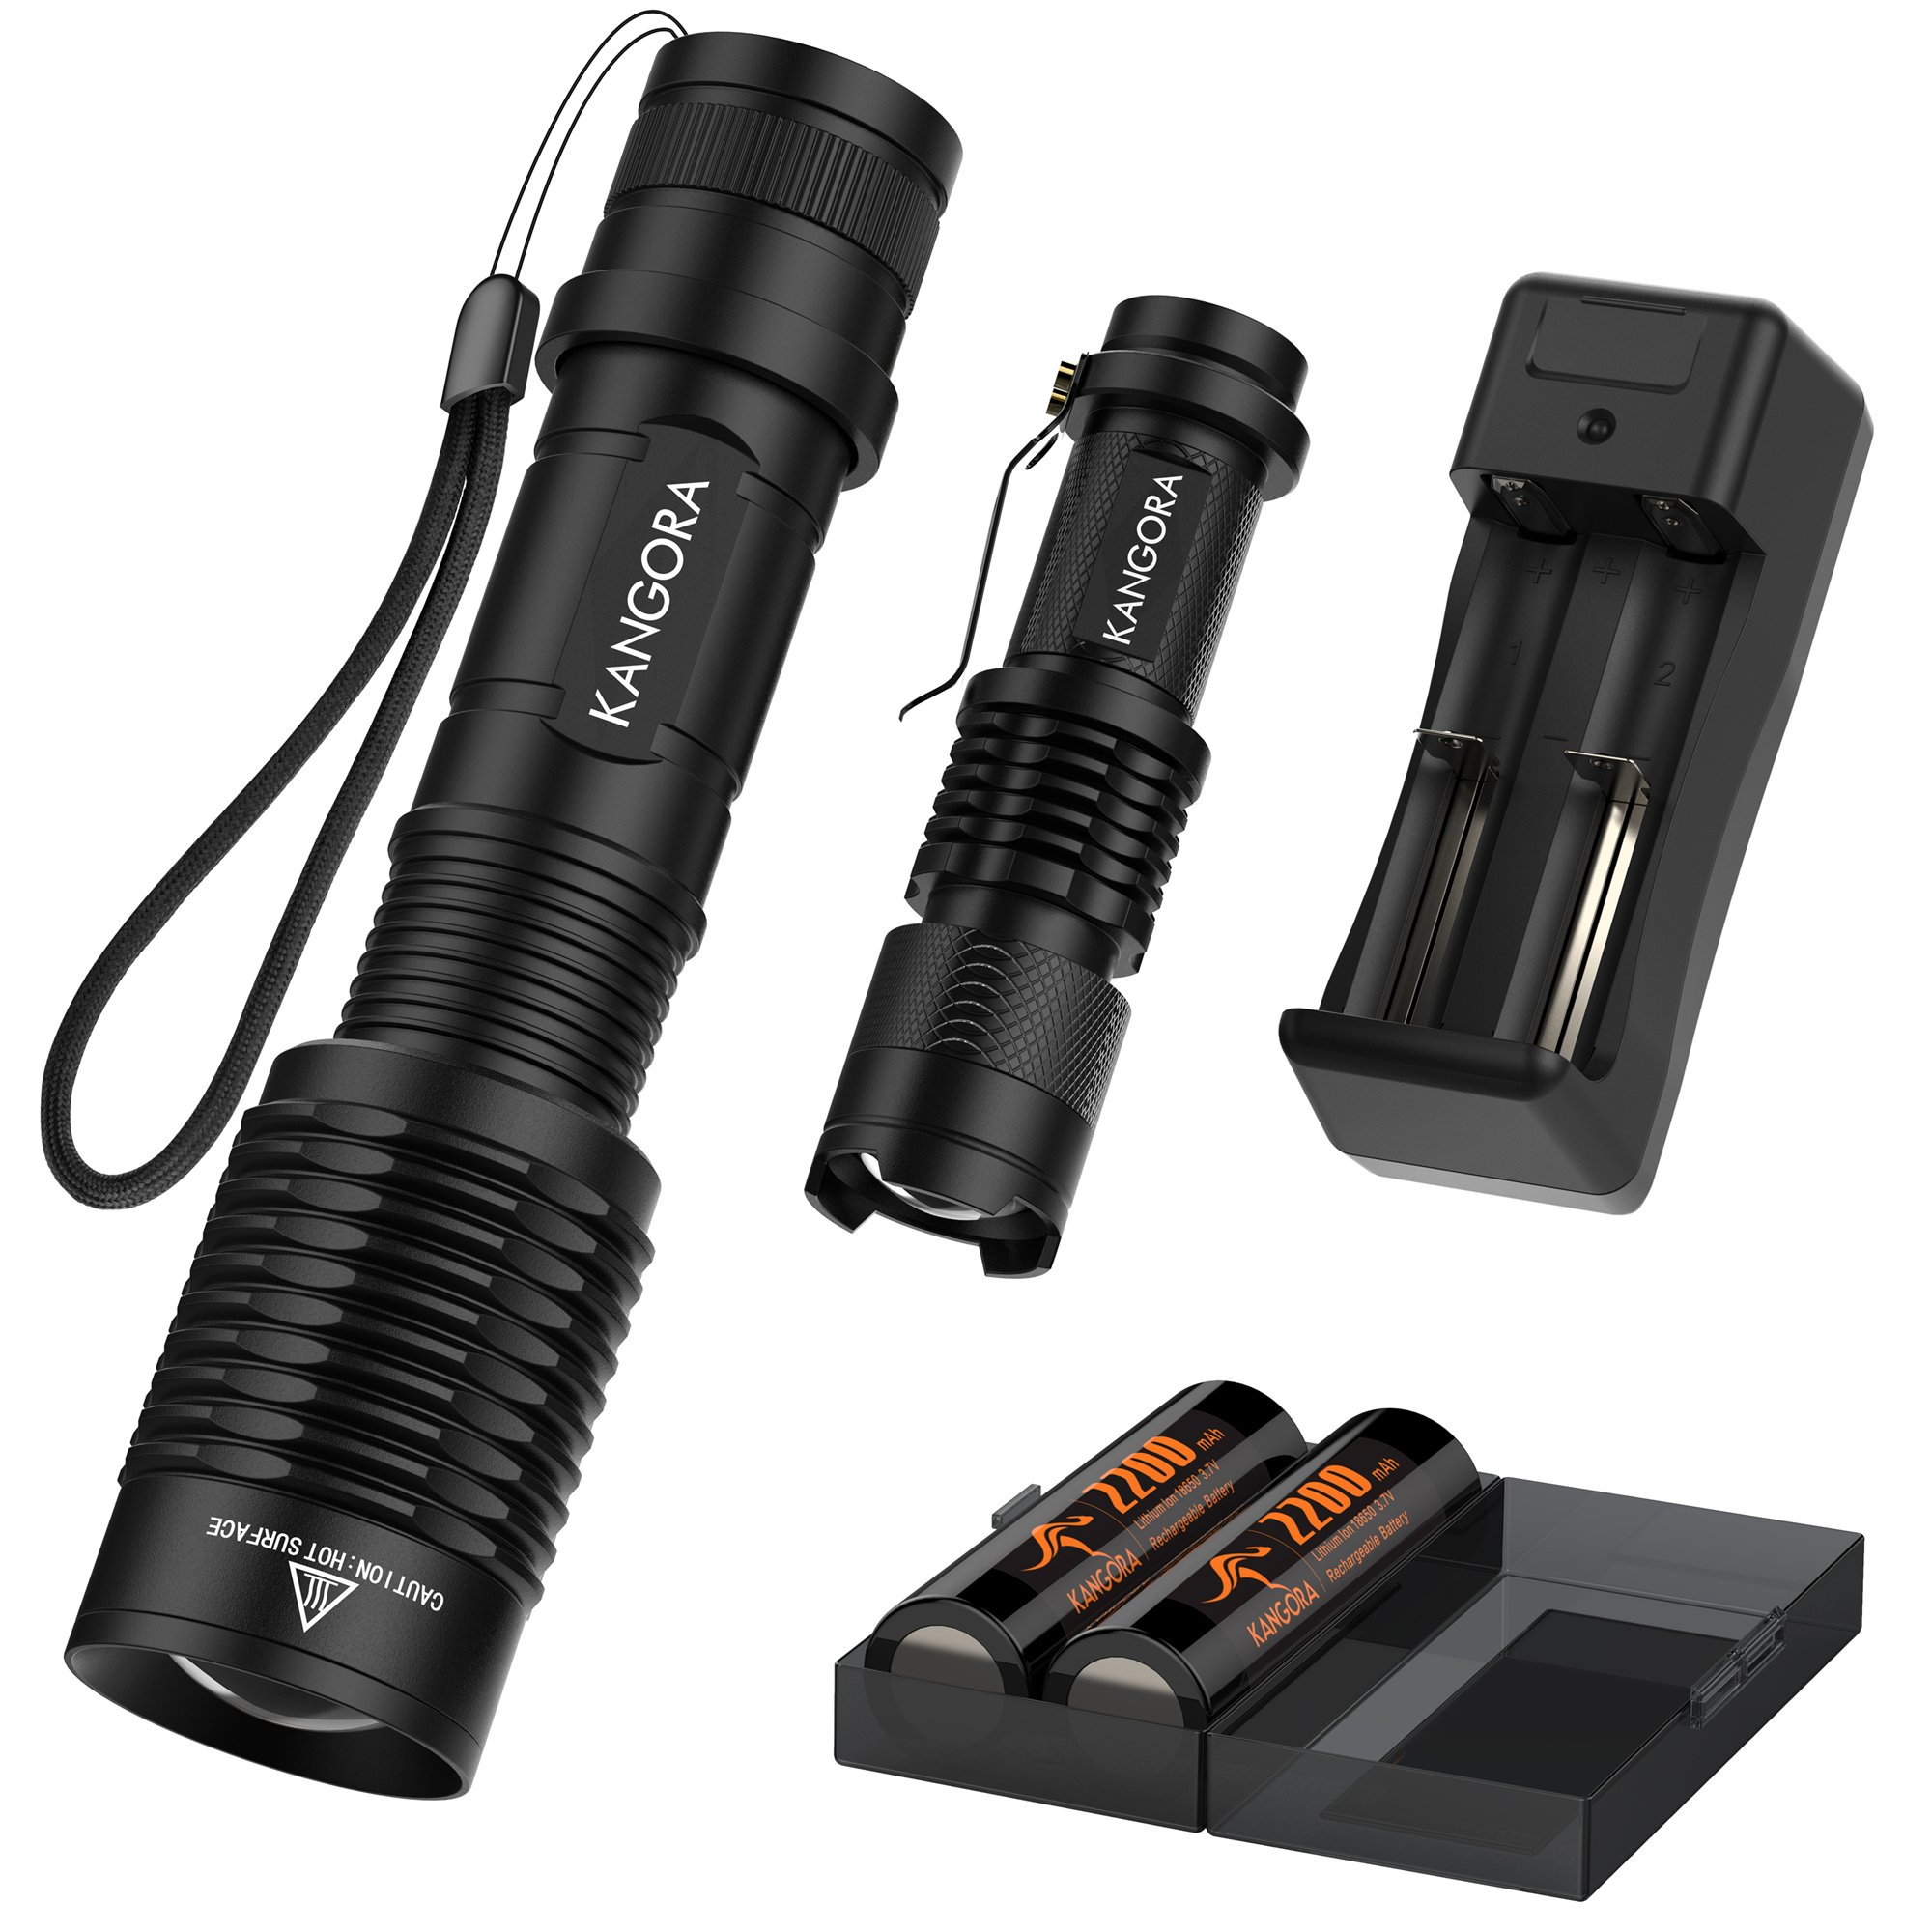 KANGORA LED Flashlight Kit - 5 Modes - Water-Resistant Handheld Flashlights with Rechargeable 18650 Battery Charger for Camping, Hiking, Cycling, and Emergency Search Missions by KANGORA (Image #2)